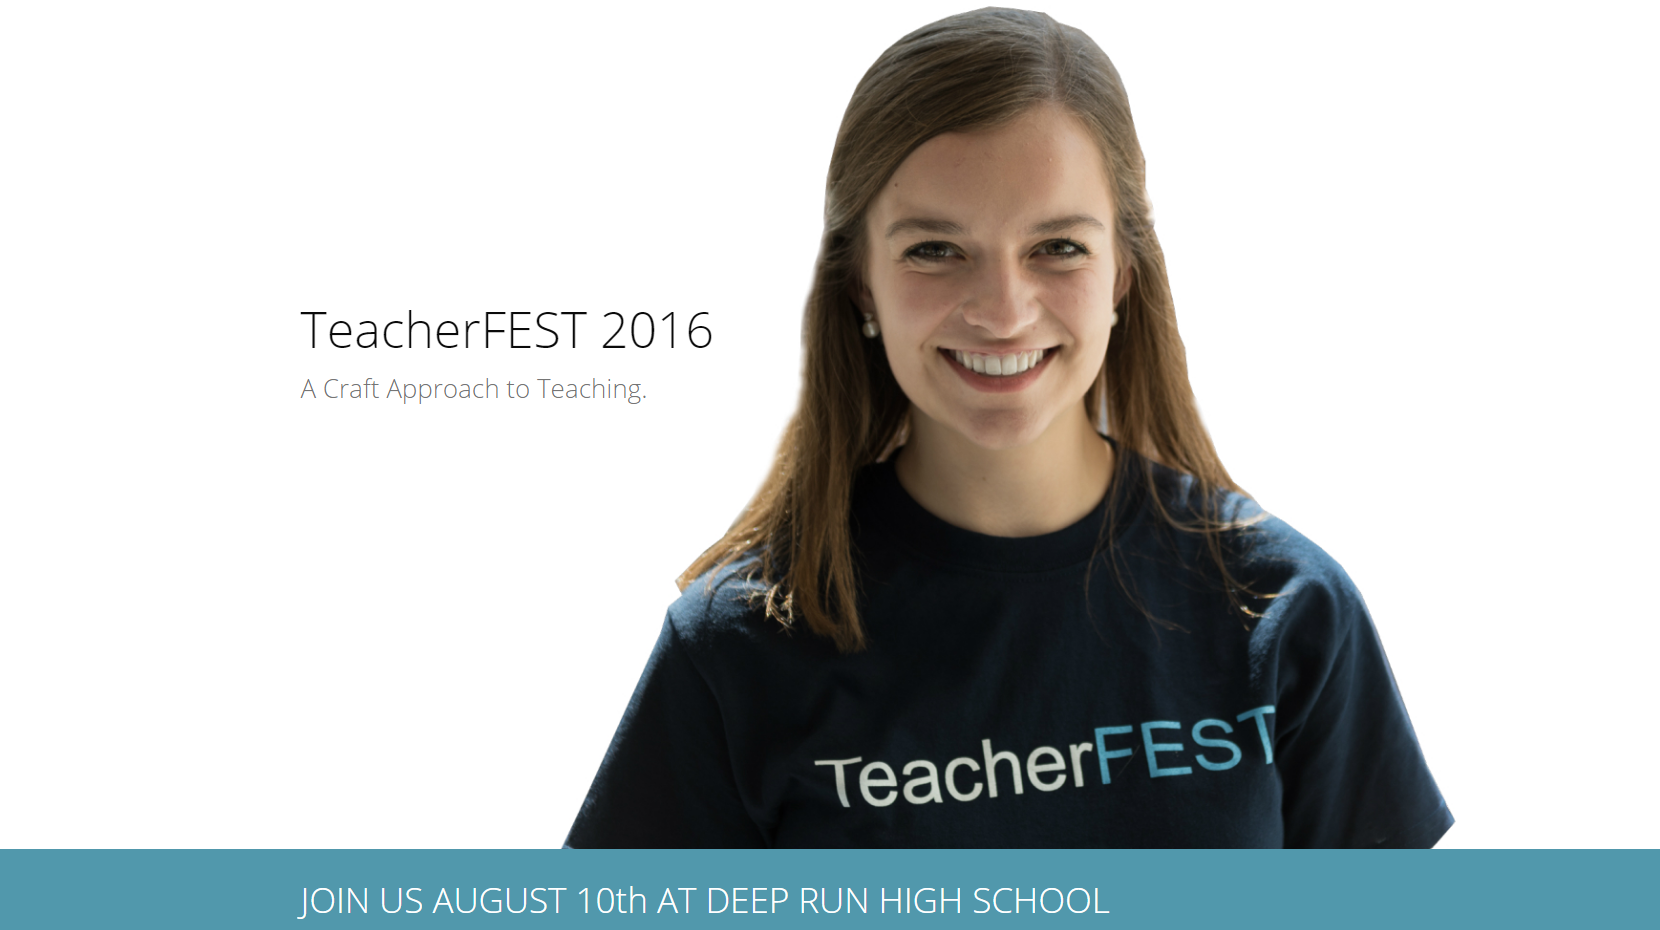 http://blogs.henrico.k12.va.us/teacherfest